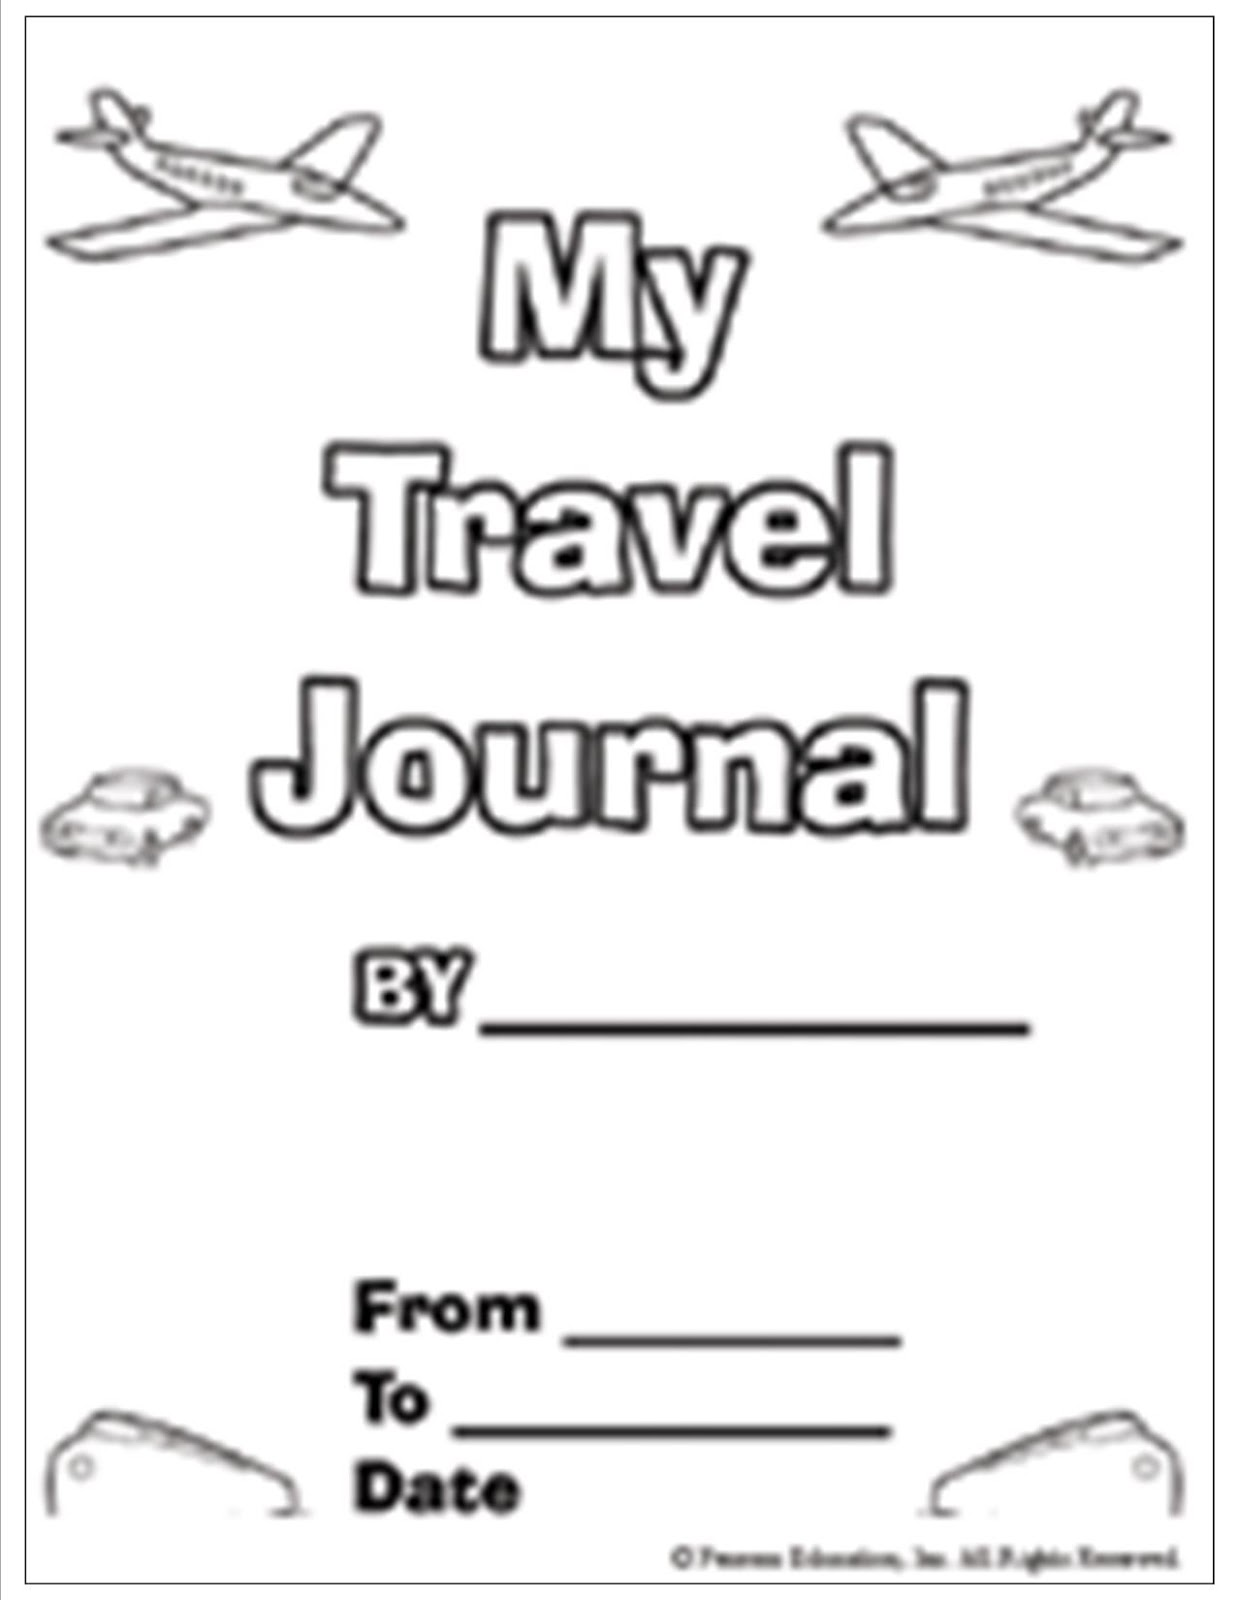 How To Be The Best Nanny Making Vacation Journals With Kids